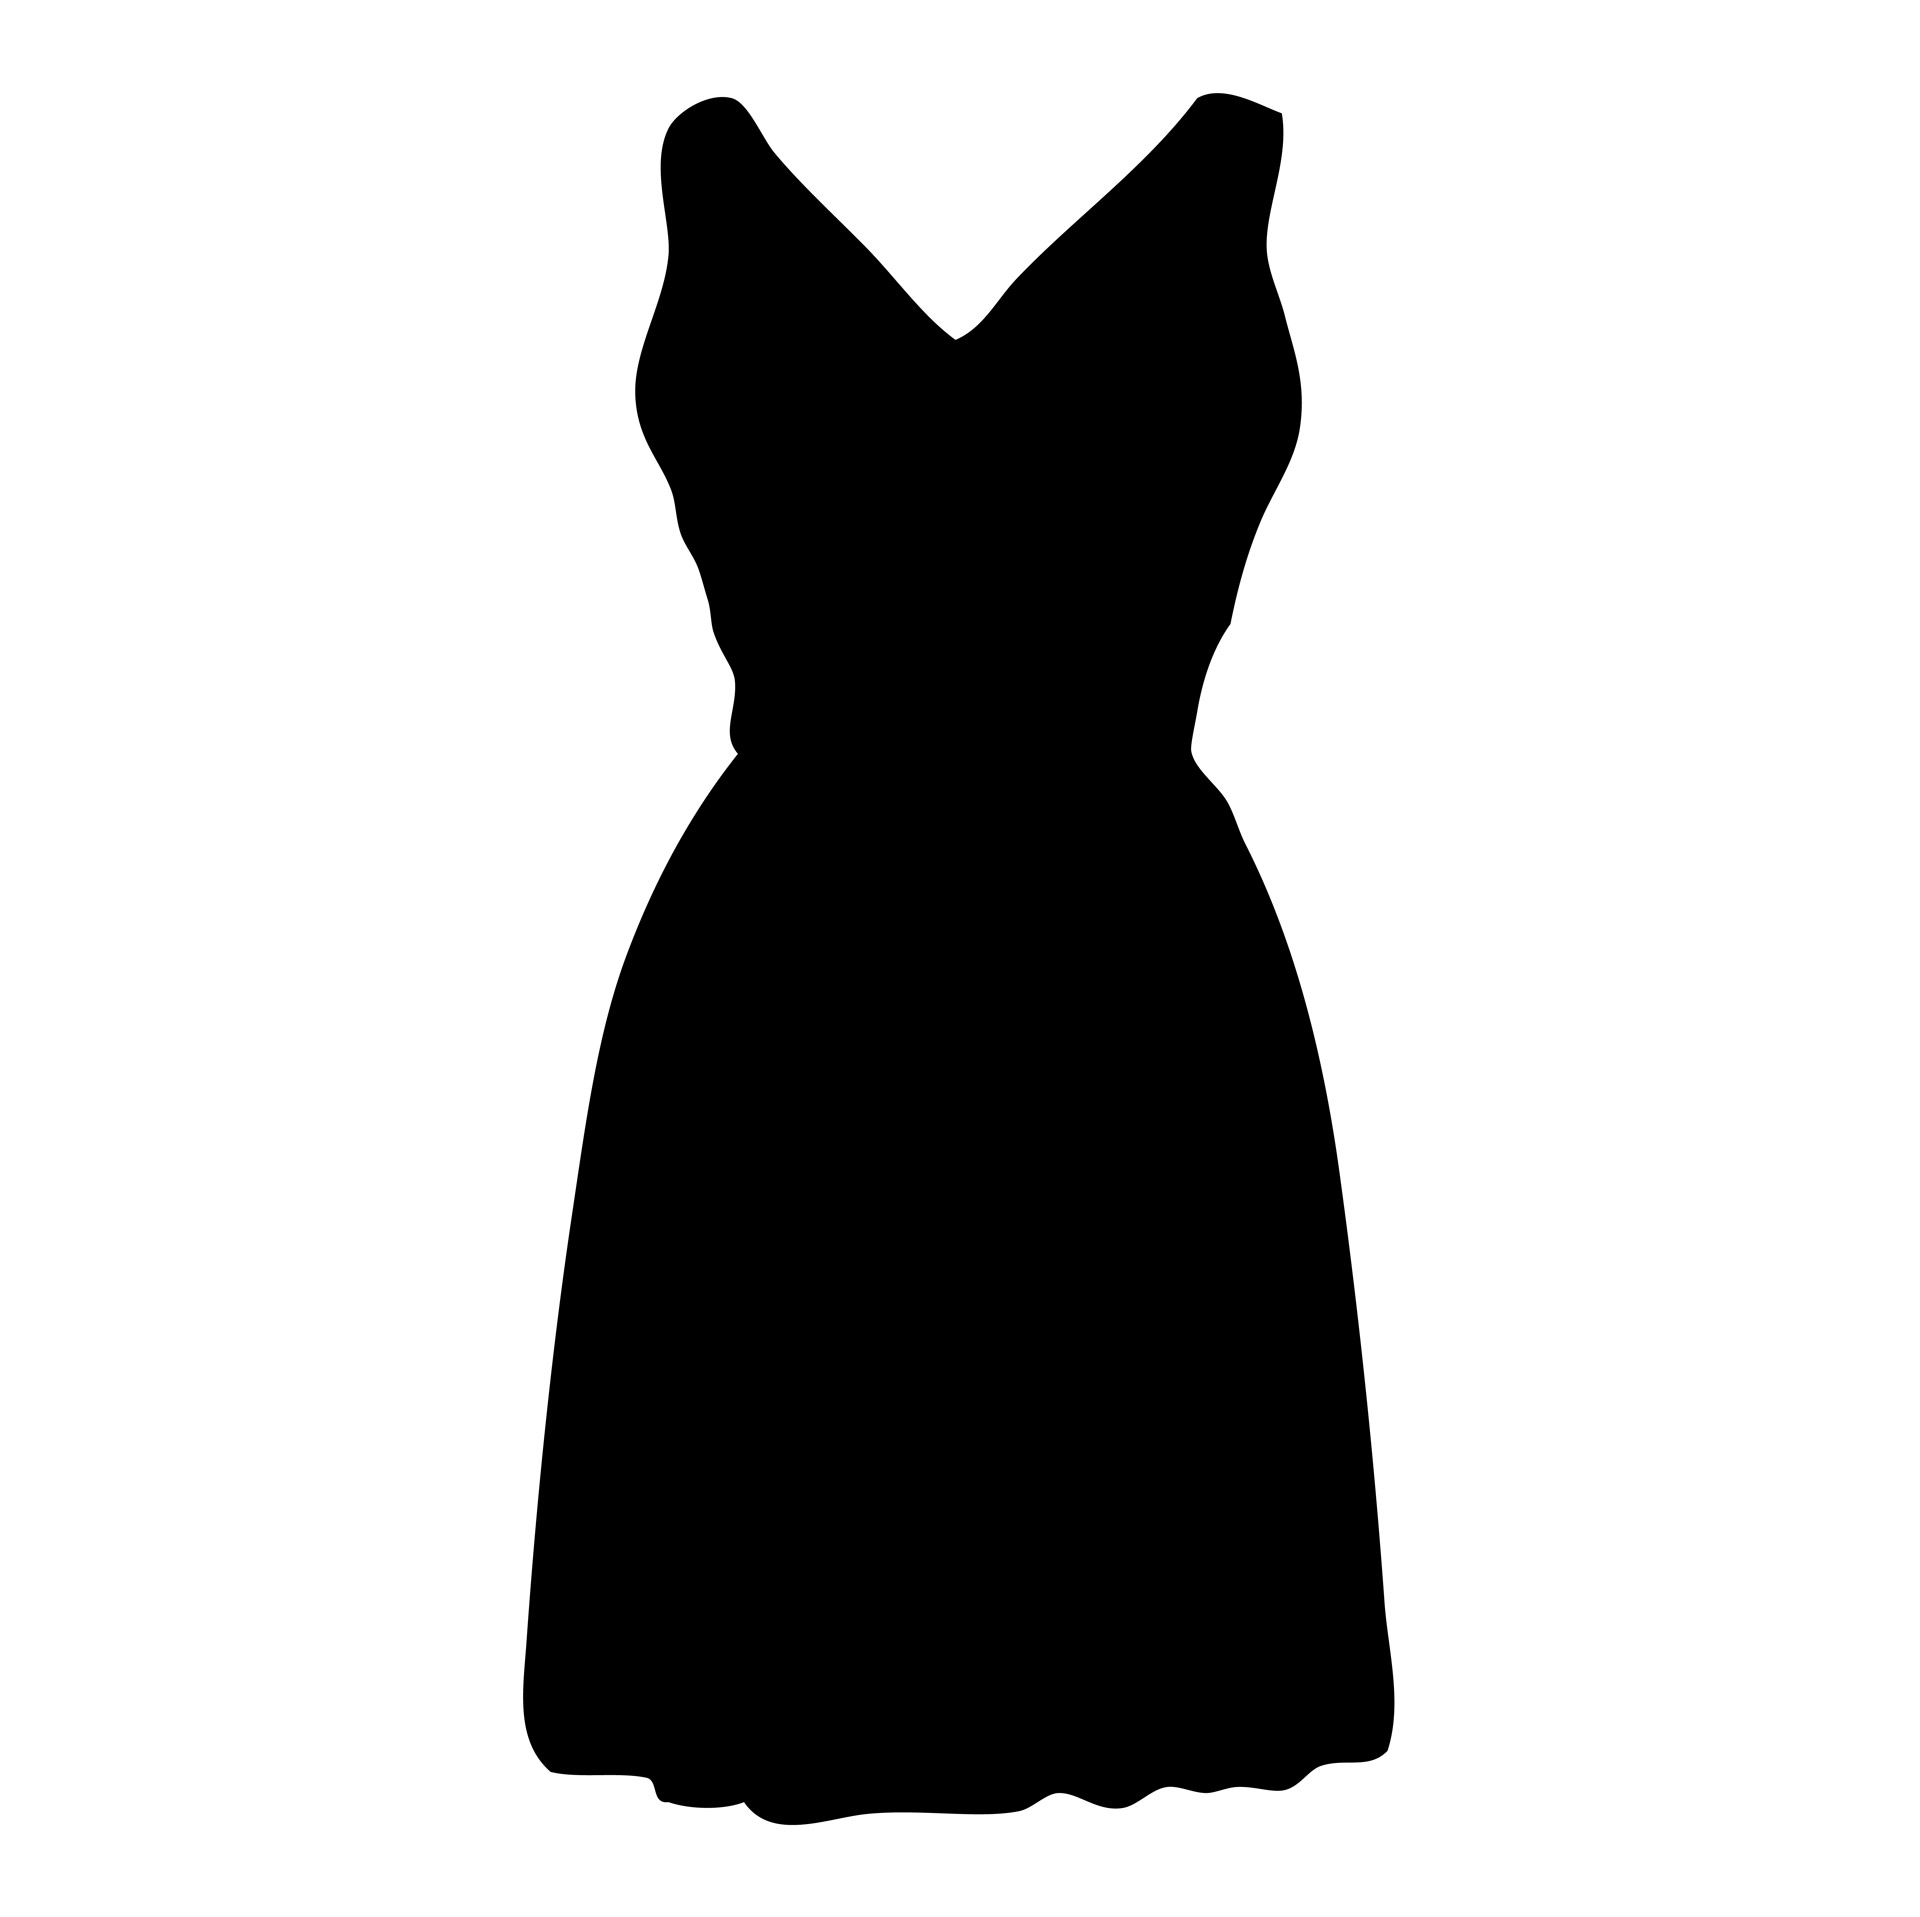 Dress clipart swirl Domain Pictures 1 Black Dress